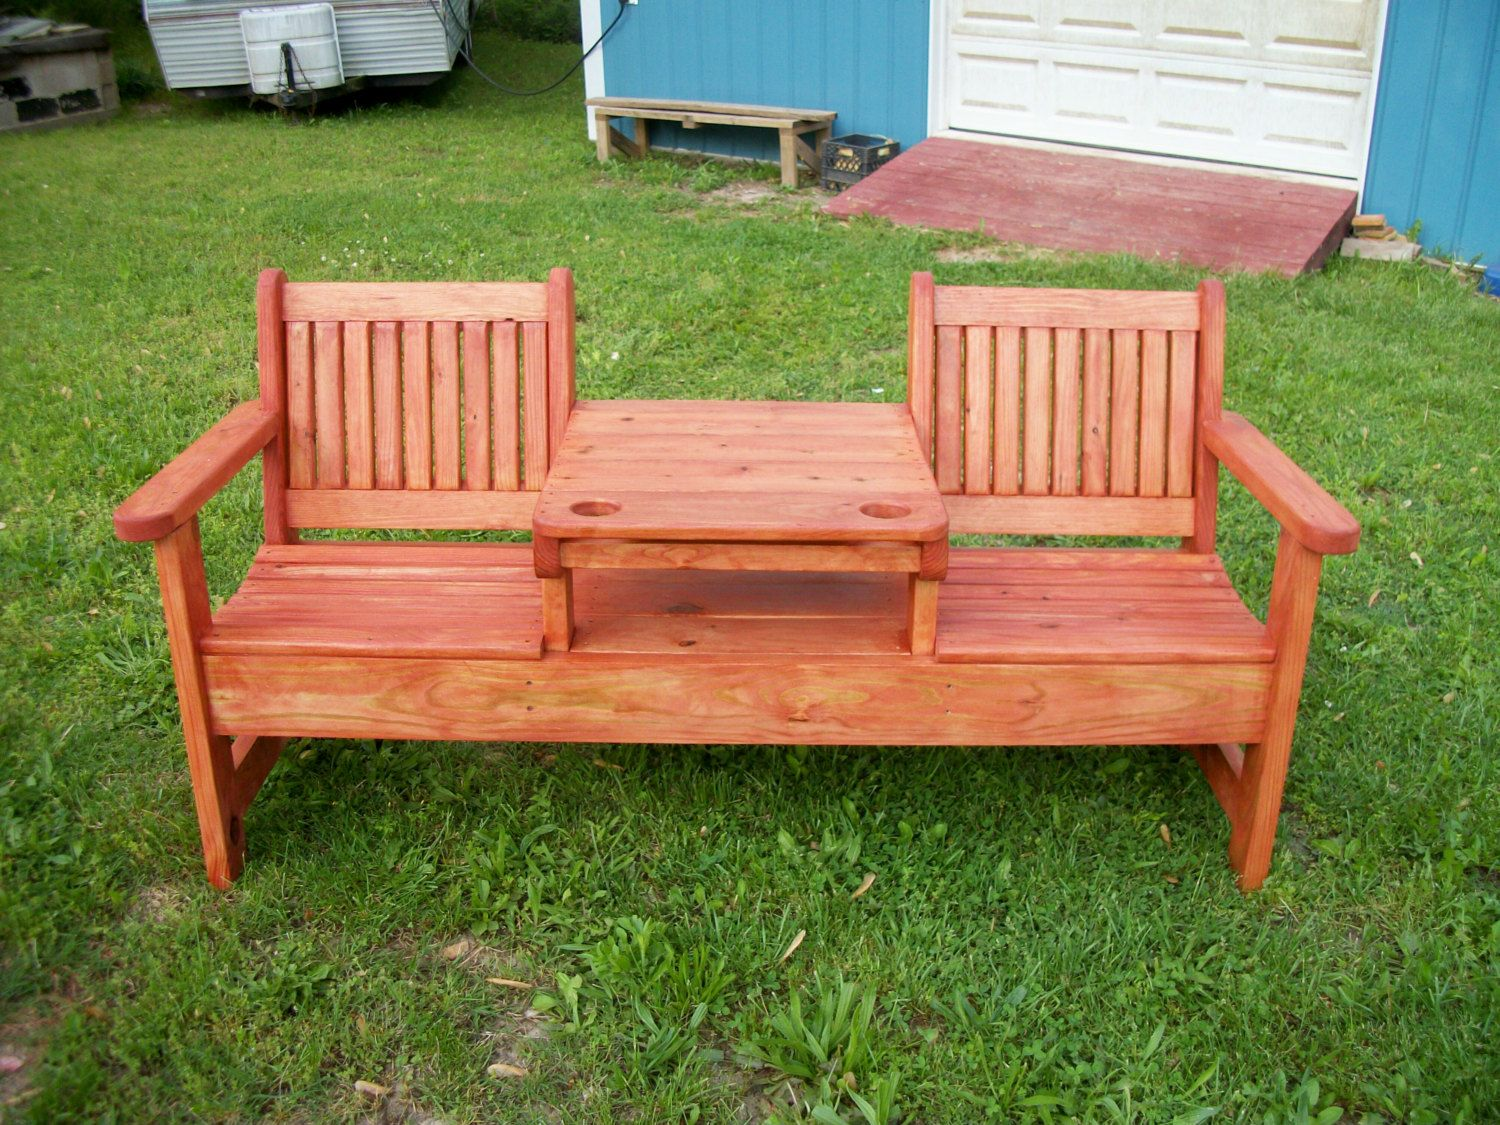 High Quality Patio Bench Ideas Plans Diy Free Download Wooden Wheelbarrows Garden Bench  Ideas Pictures Of Garden Bench